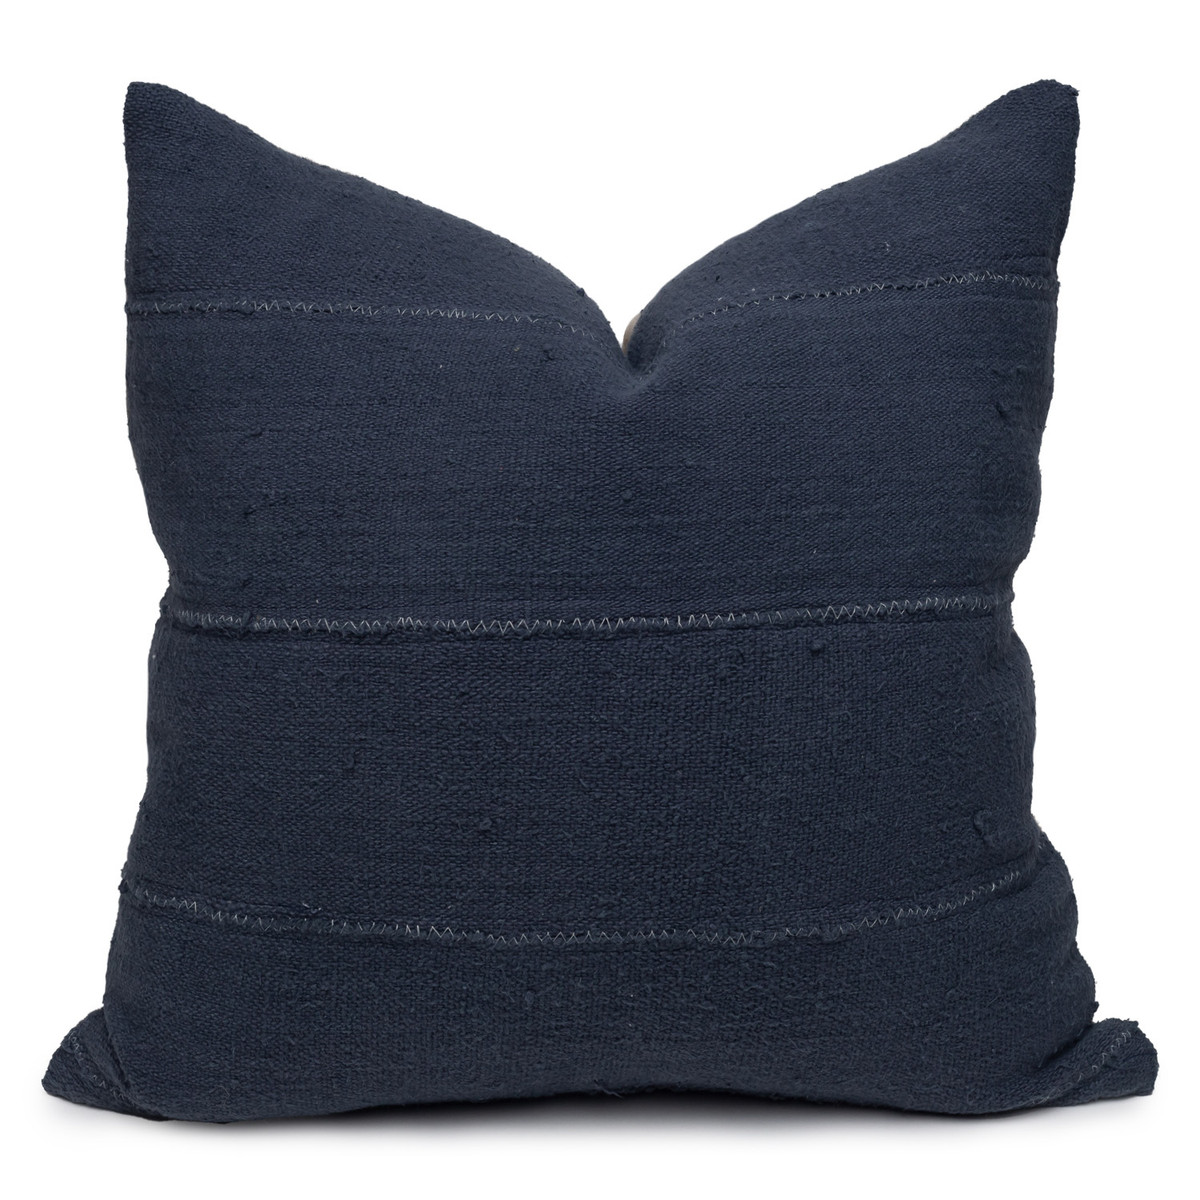 Joe Mud Cloth Pillow in Navy-22-Front